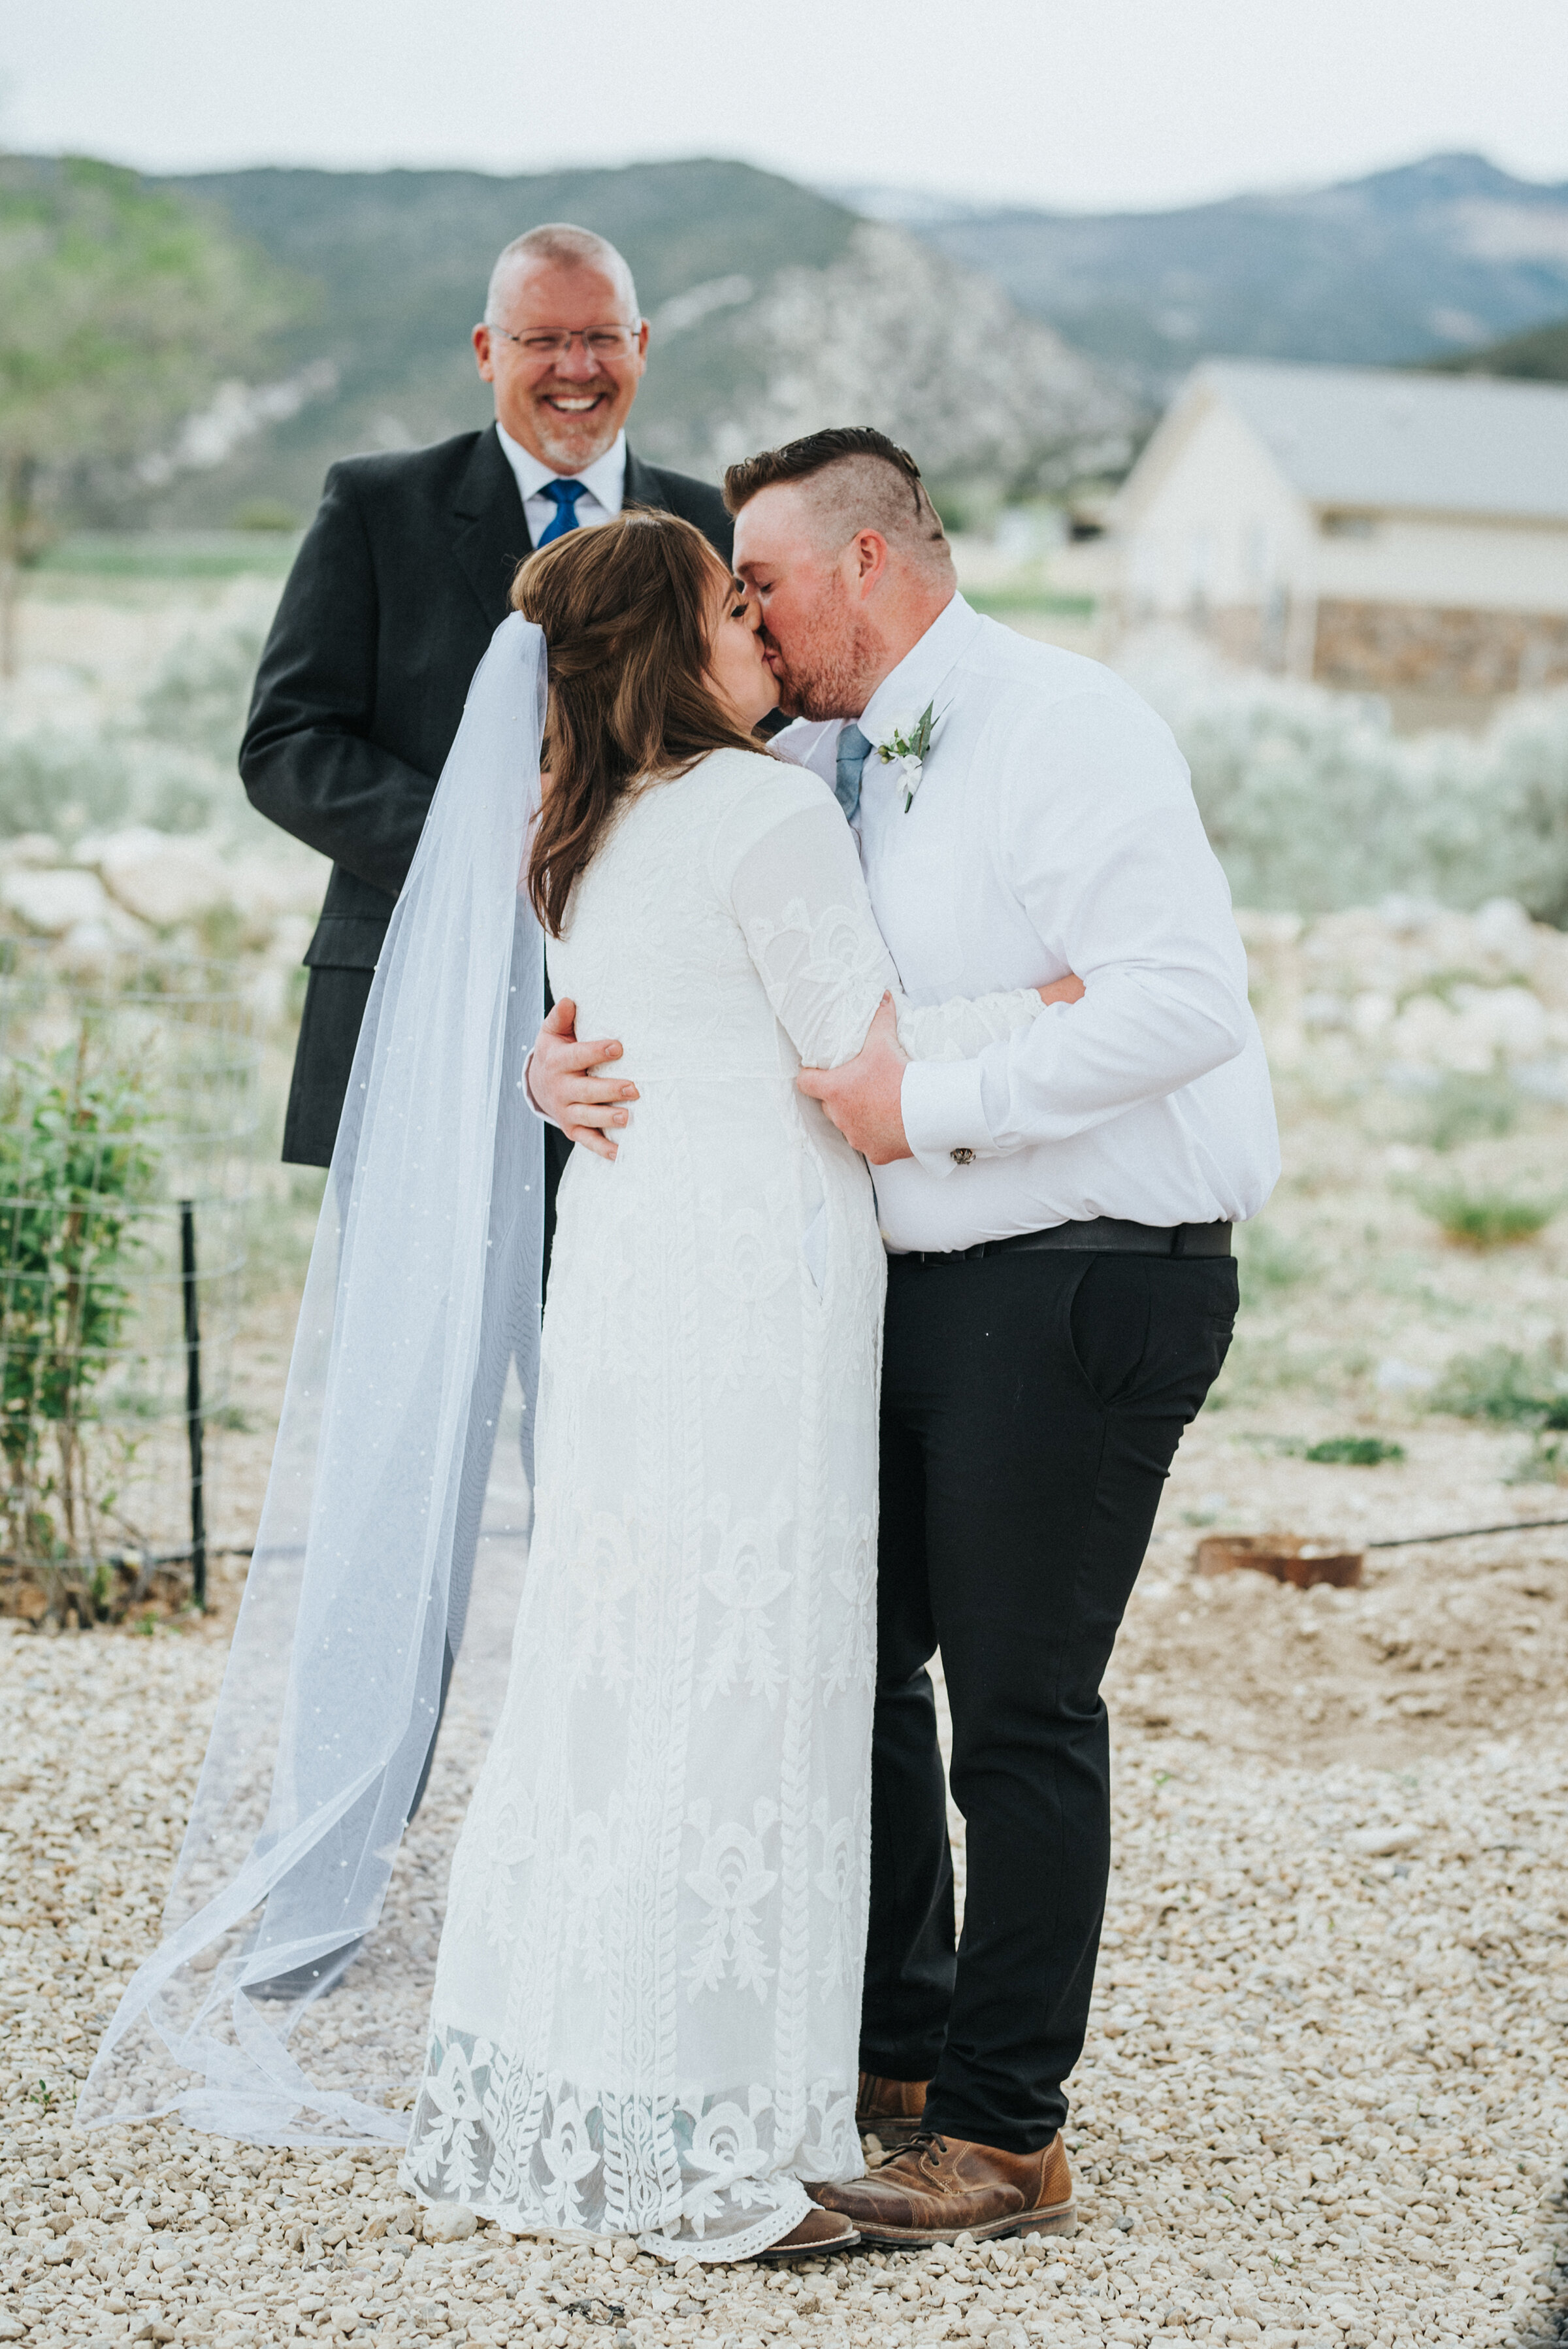 The beautiful outdoor ceremony for this western bride and groom was sealed with a kiss during their intimate wedding in Ephraim Utah.  photoshoot in Ephraim Utah photography wedding outdoor location western inspired rustic Airbnb photo aesthetic #ephraimutah #utahphotography #weddingdayphotography #gettingmarried #rusticwedding #utahwedding #westernstyle #weddingphotoshoot